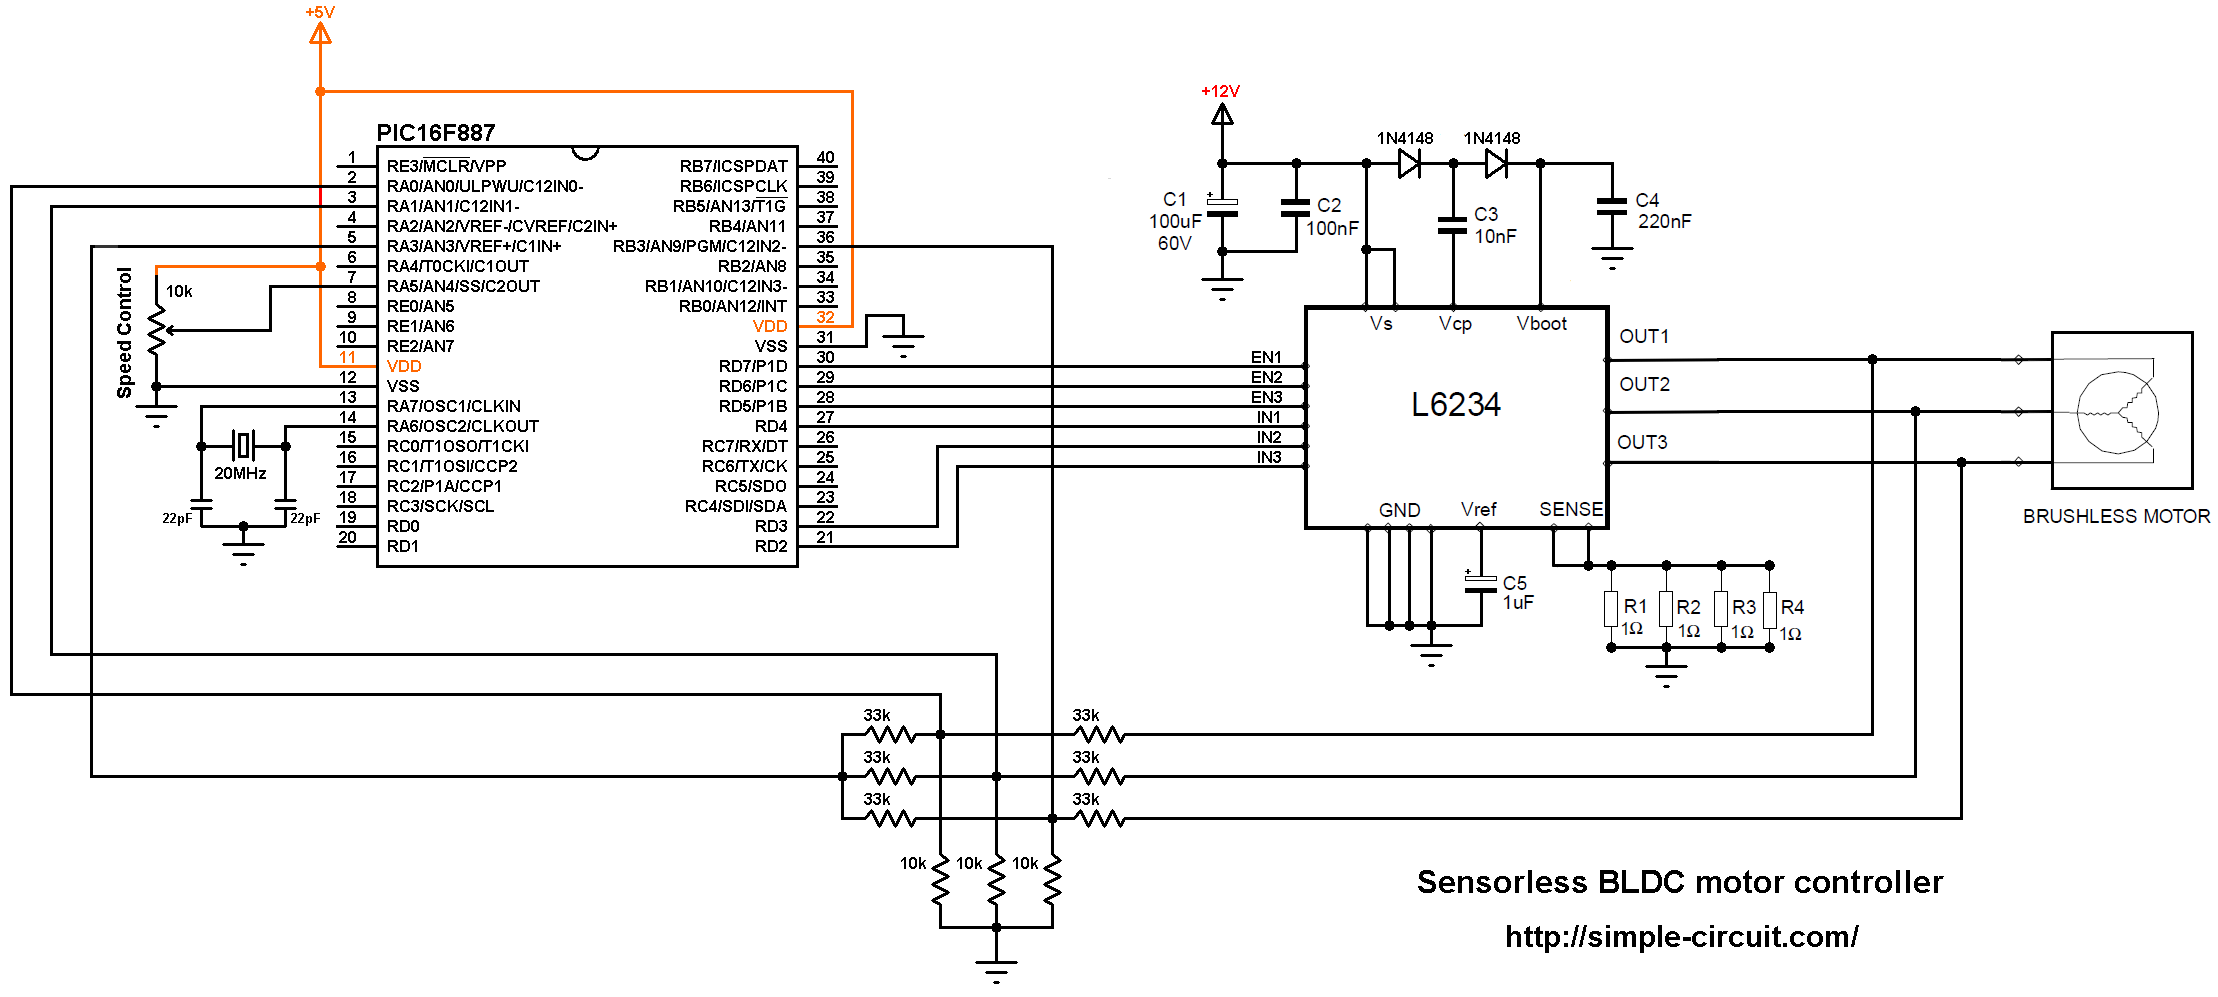 Brushless Motor Control With Pic16f887 And L6234 Driver Simple Bridge Circuit Schematic Controller Diy Esc